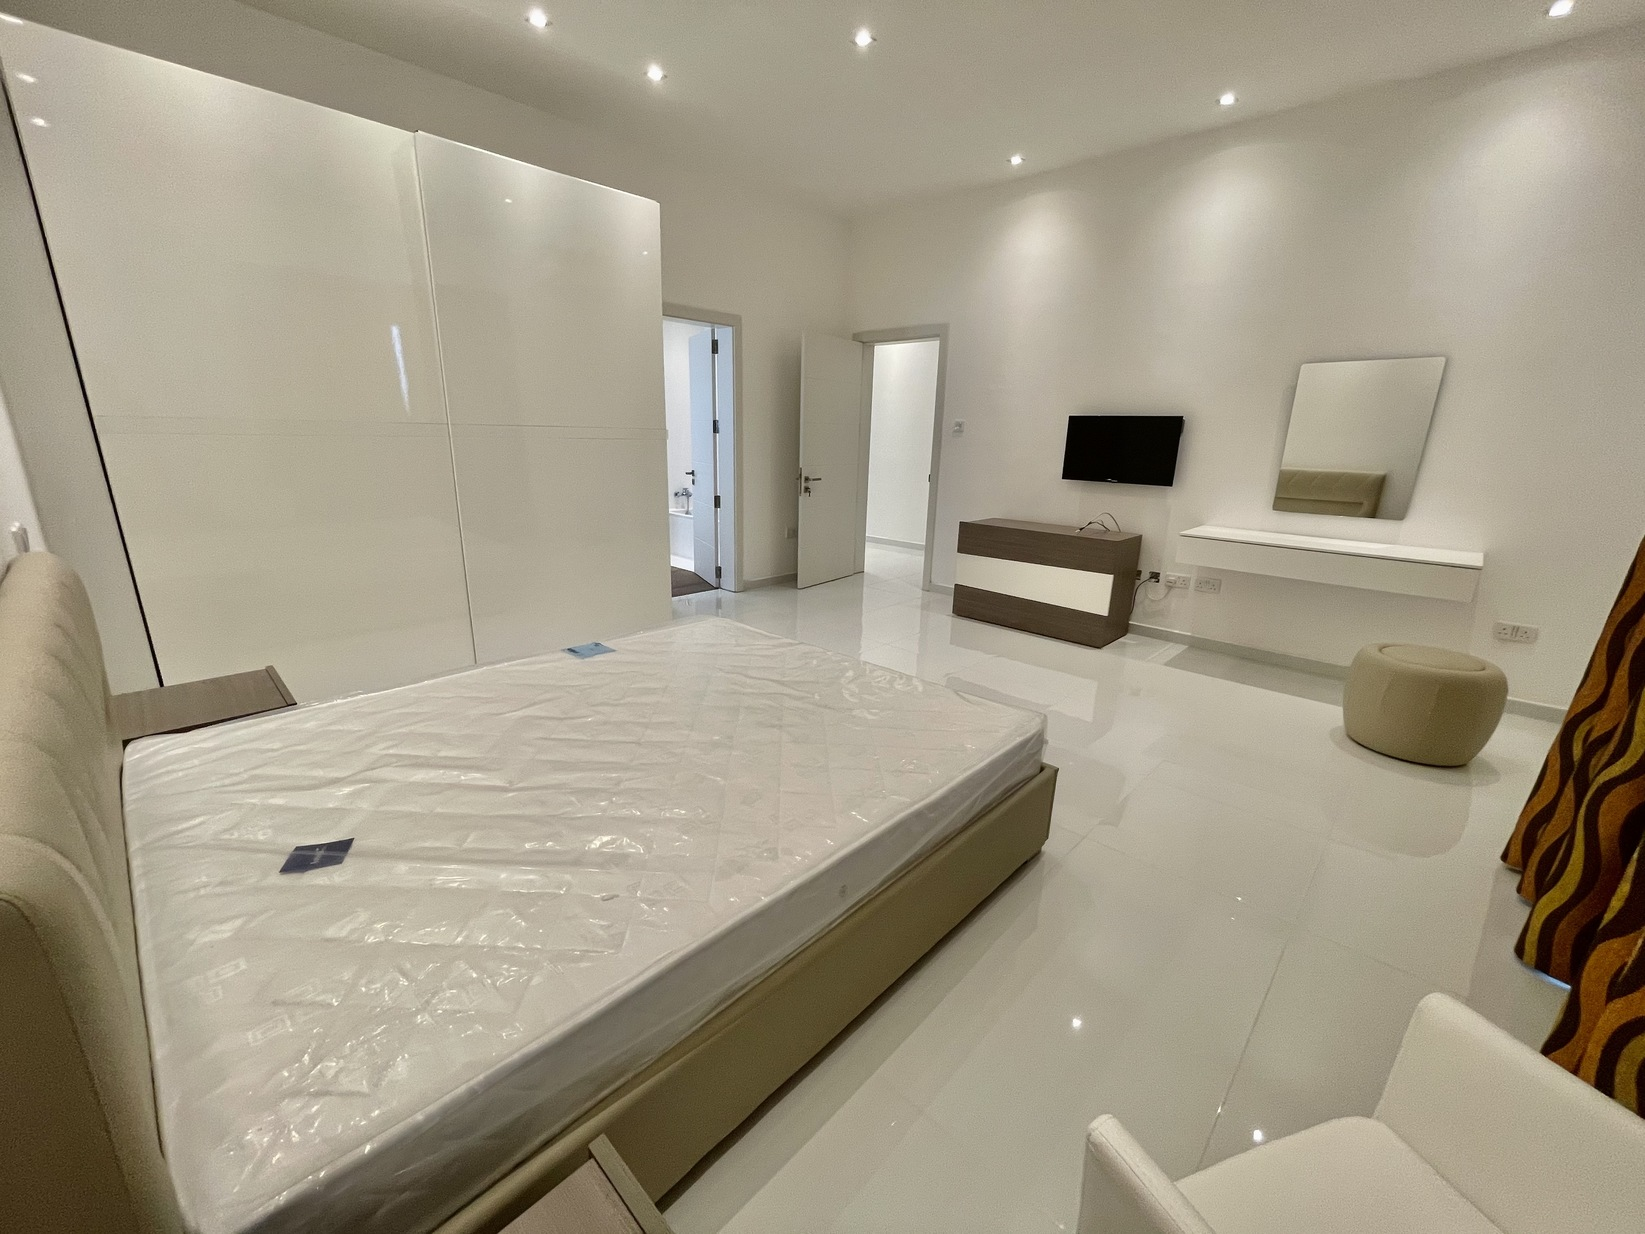 3 bed Apartment For Rent in Zejtun, Zejtun - thumb 15